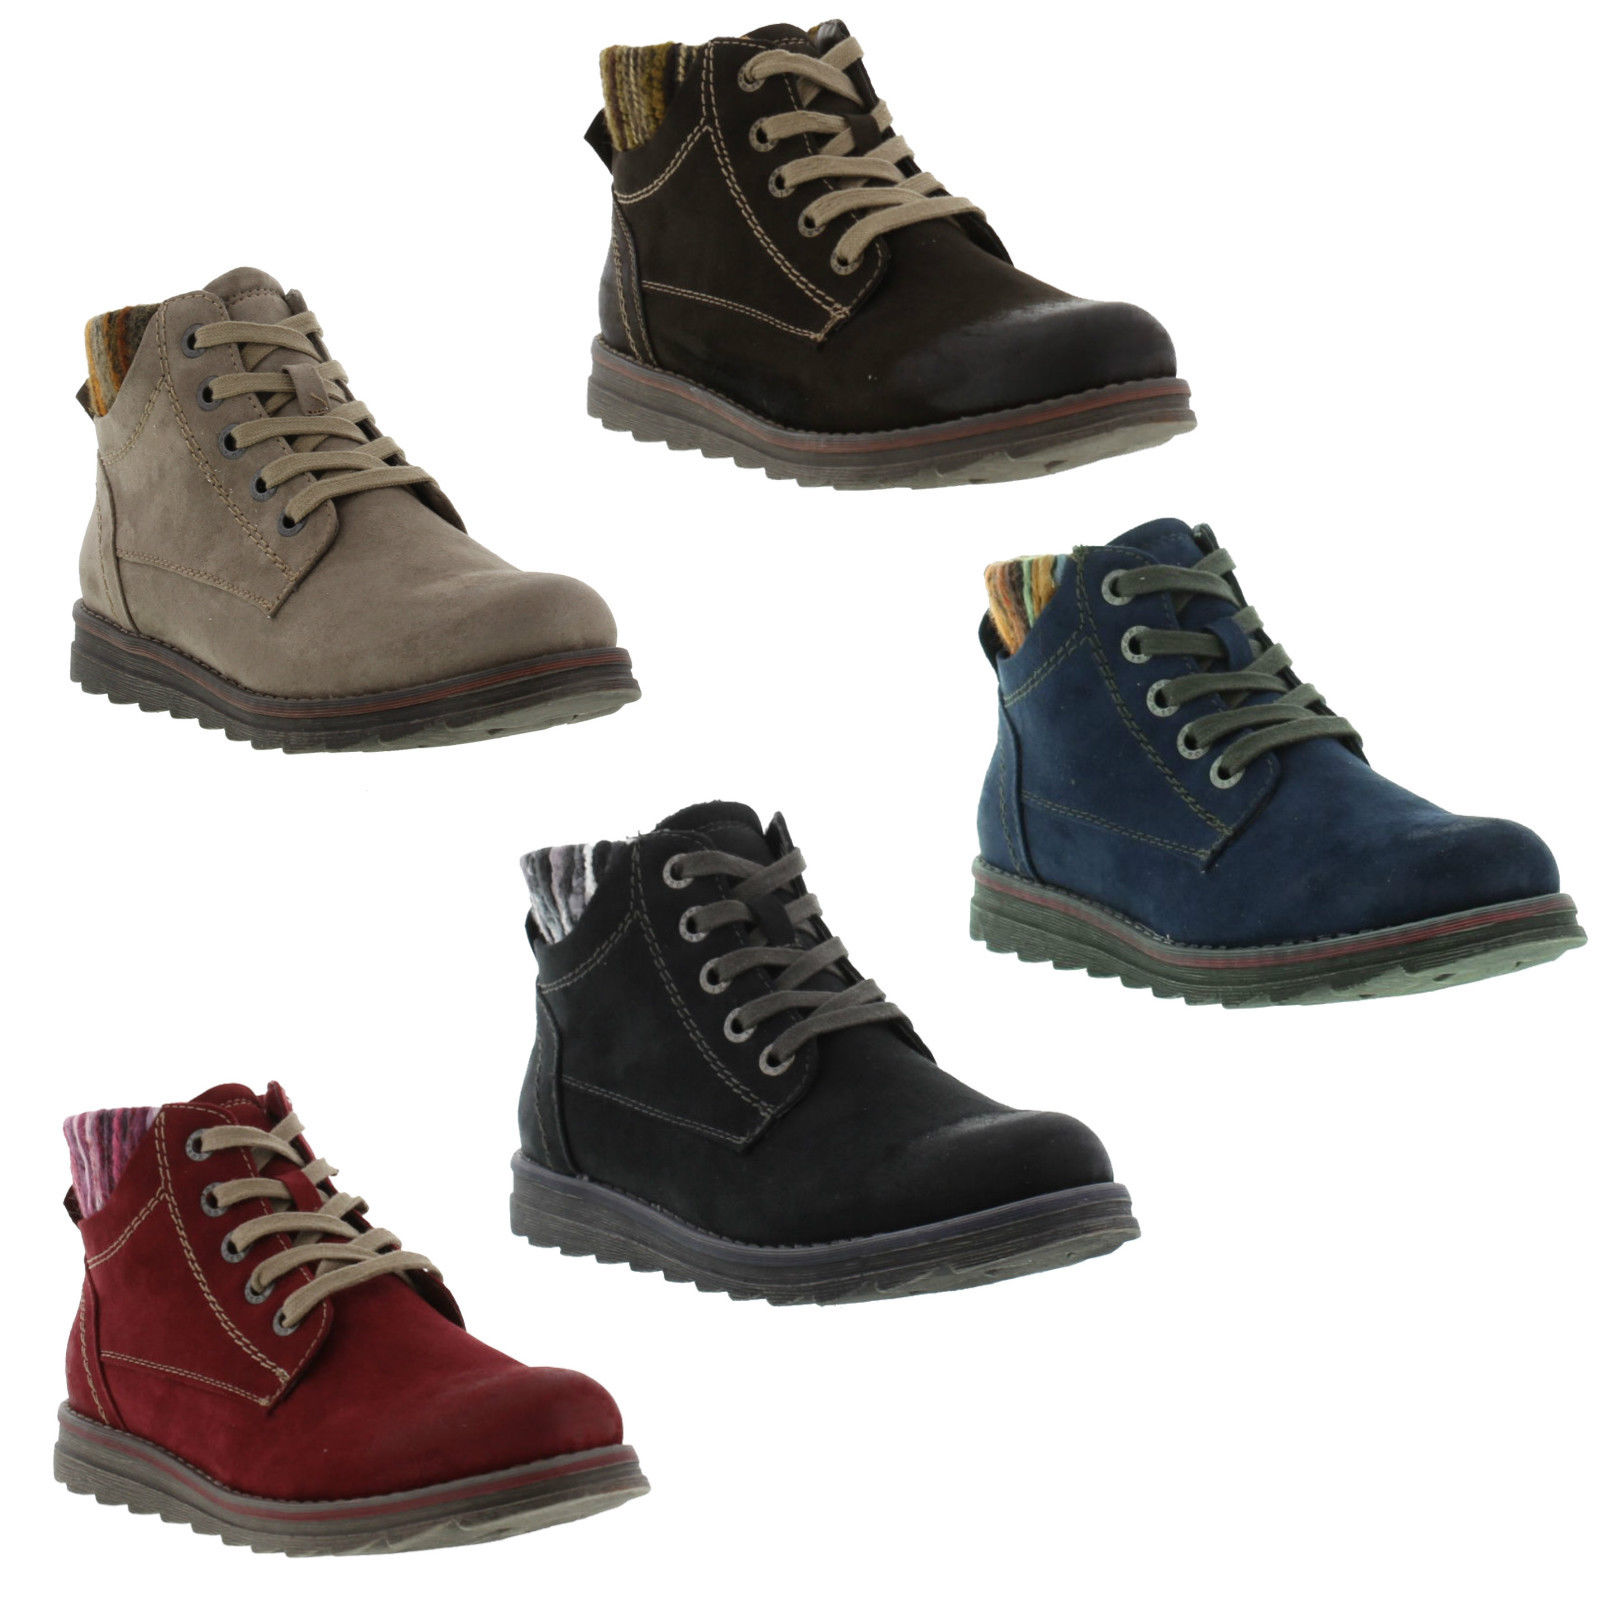 marco tozzi 25208 womens lace up blue red vegan ankle chukka boots size 8 ebay. Black Bedroom Furniture Sets. Home Design Ideas